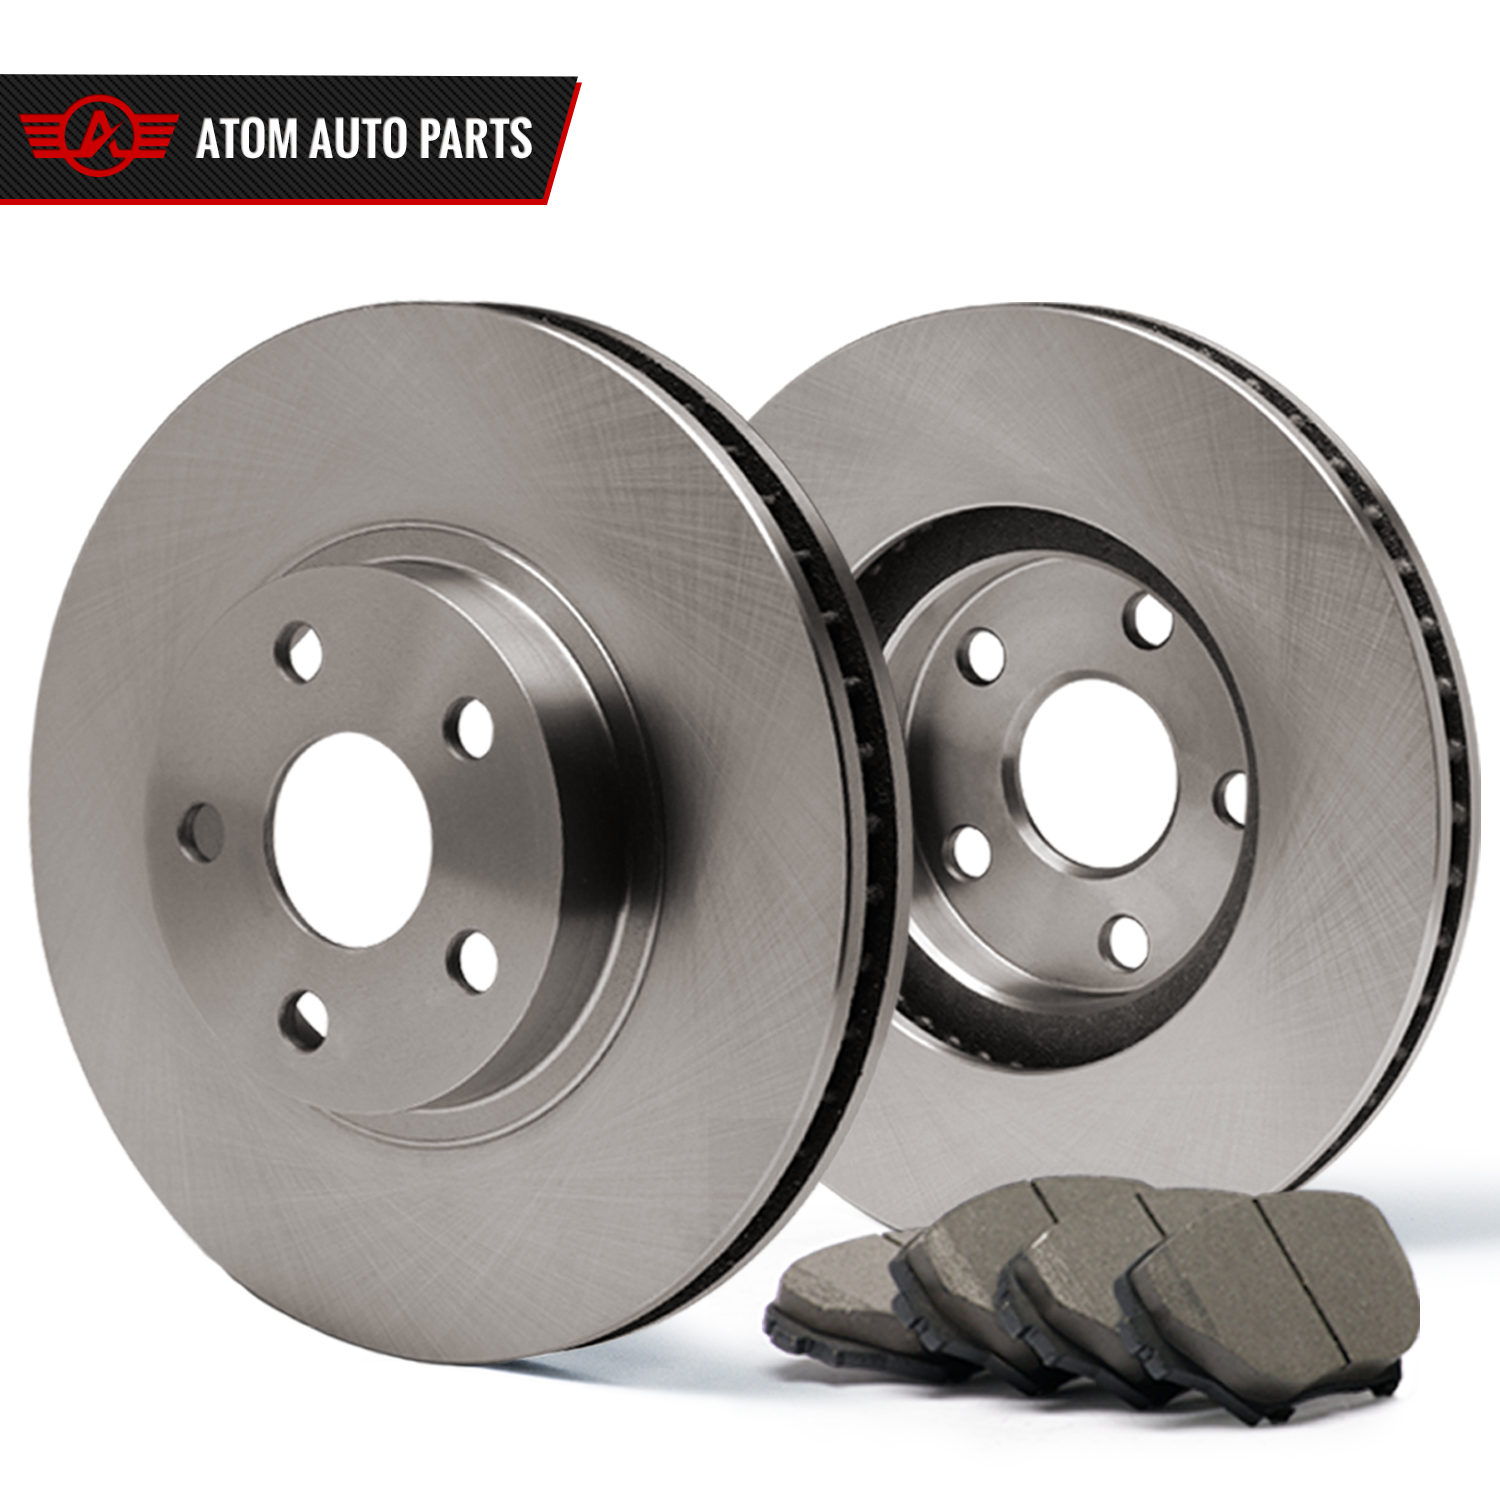 Rear-Rotors-w-Ceramic-Pads-OE-Brakes-2009-2010-Vibe-Matrix-2-4-Engine